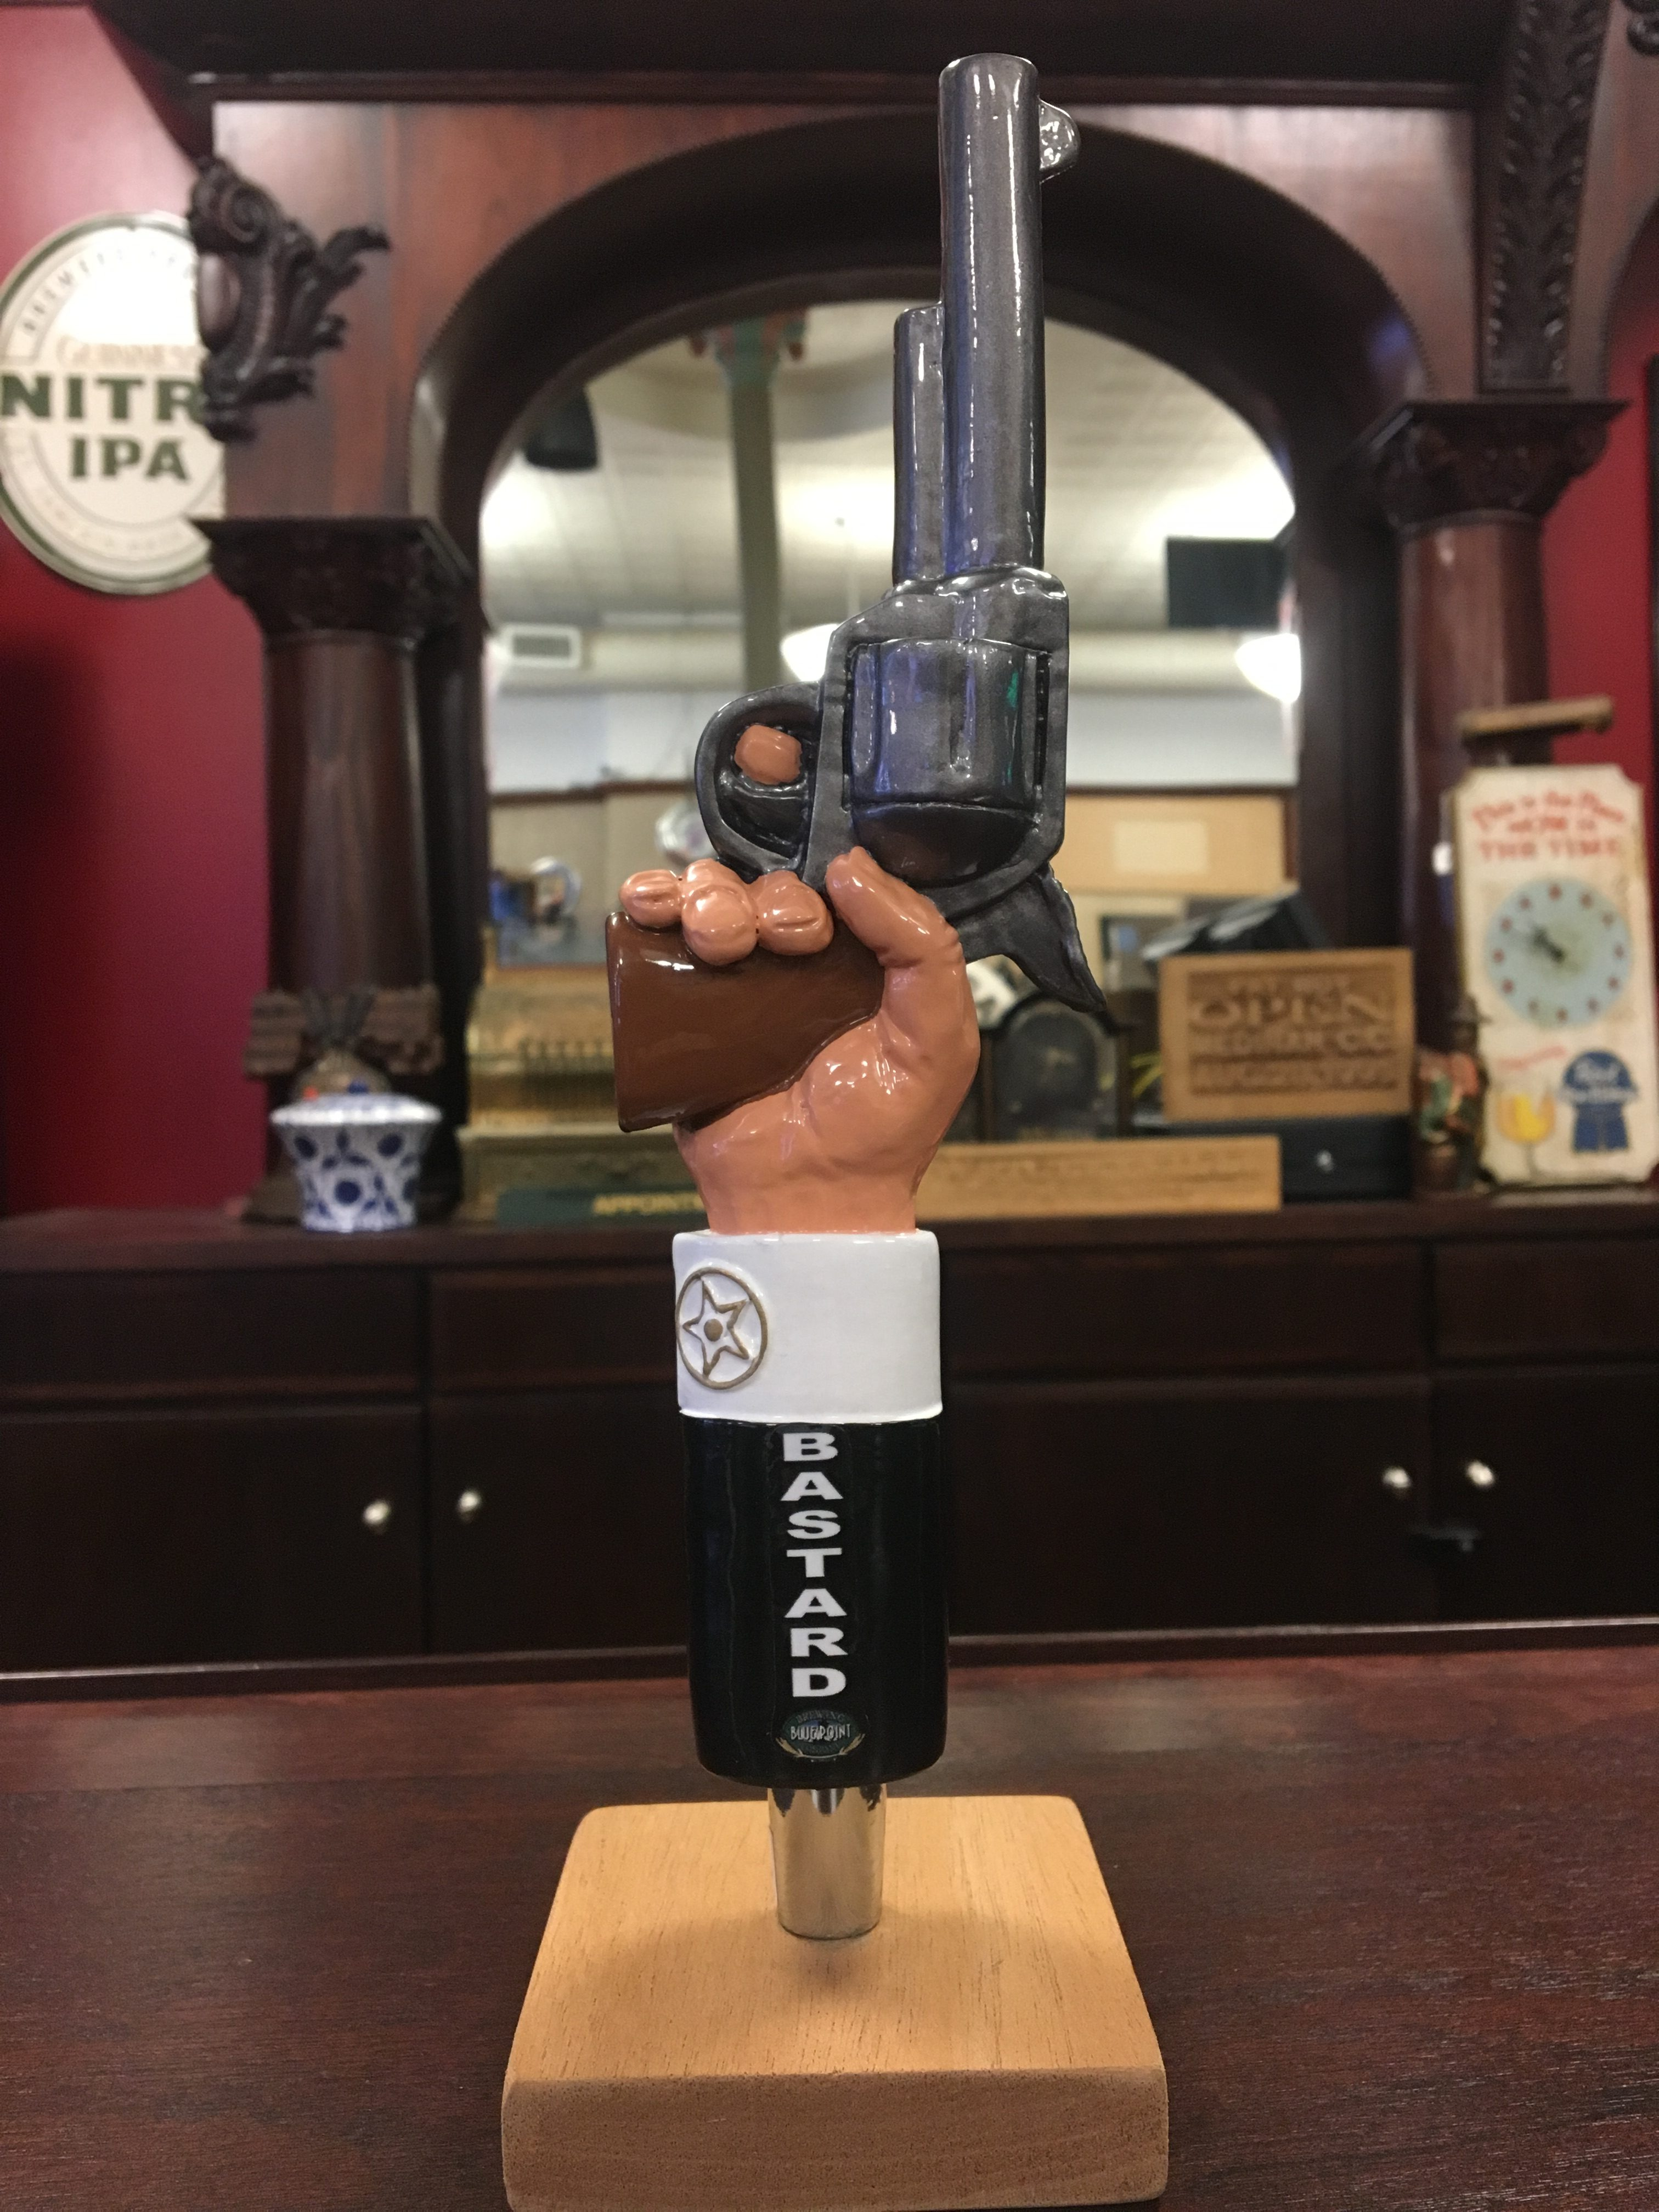 Photo Of Blue Point Brewing Co' Bastard Ale Tap Handle